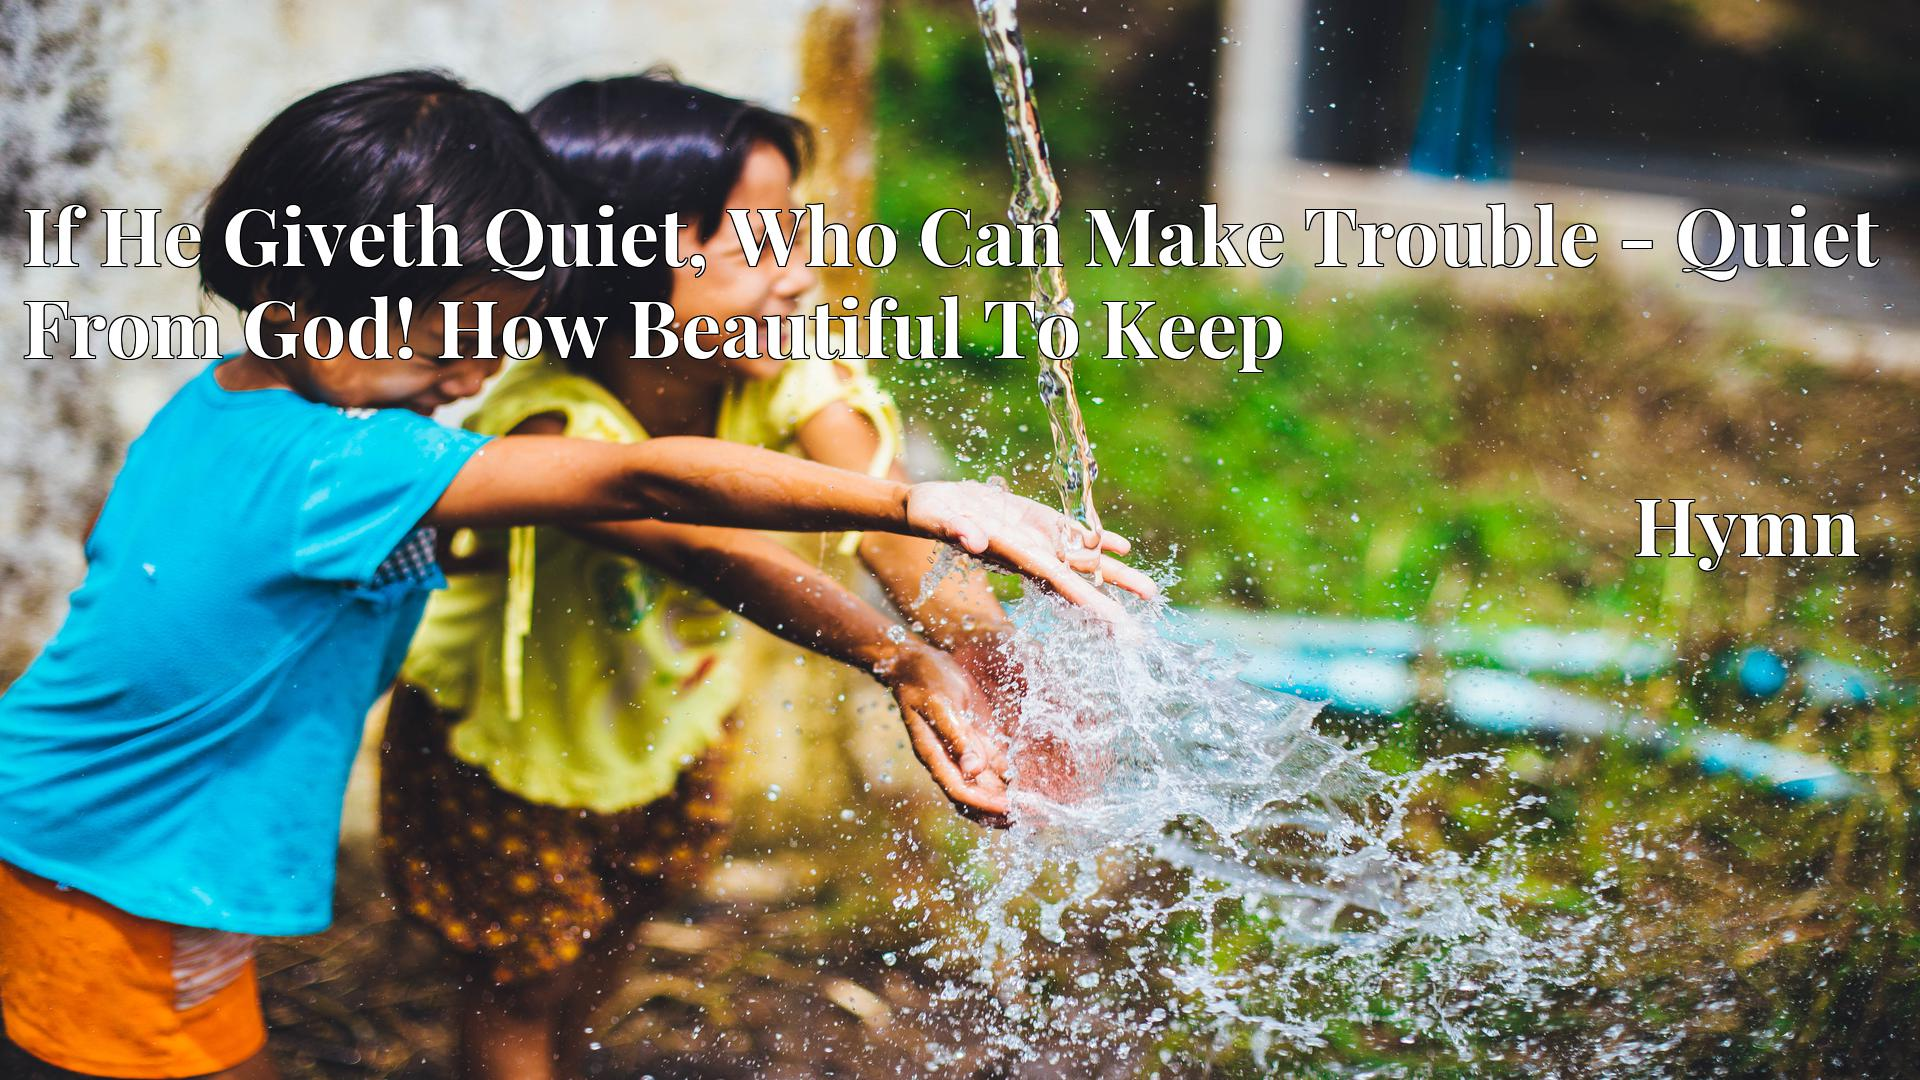 If He Giveth Quiet, Who Can Make Trouble - Quiet From God! How Beautiful To Keep - Hymn